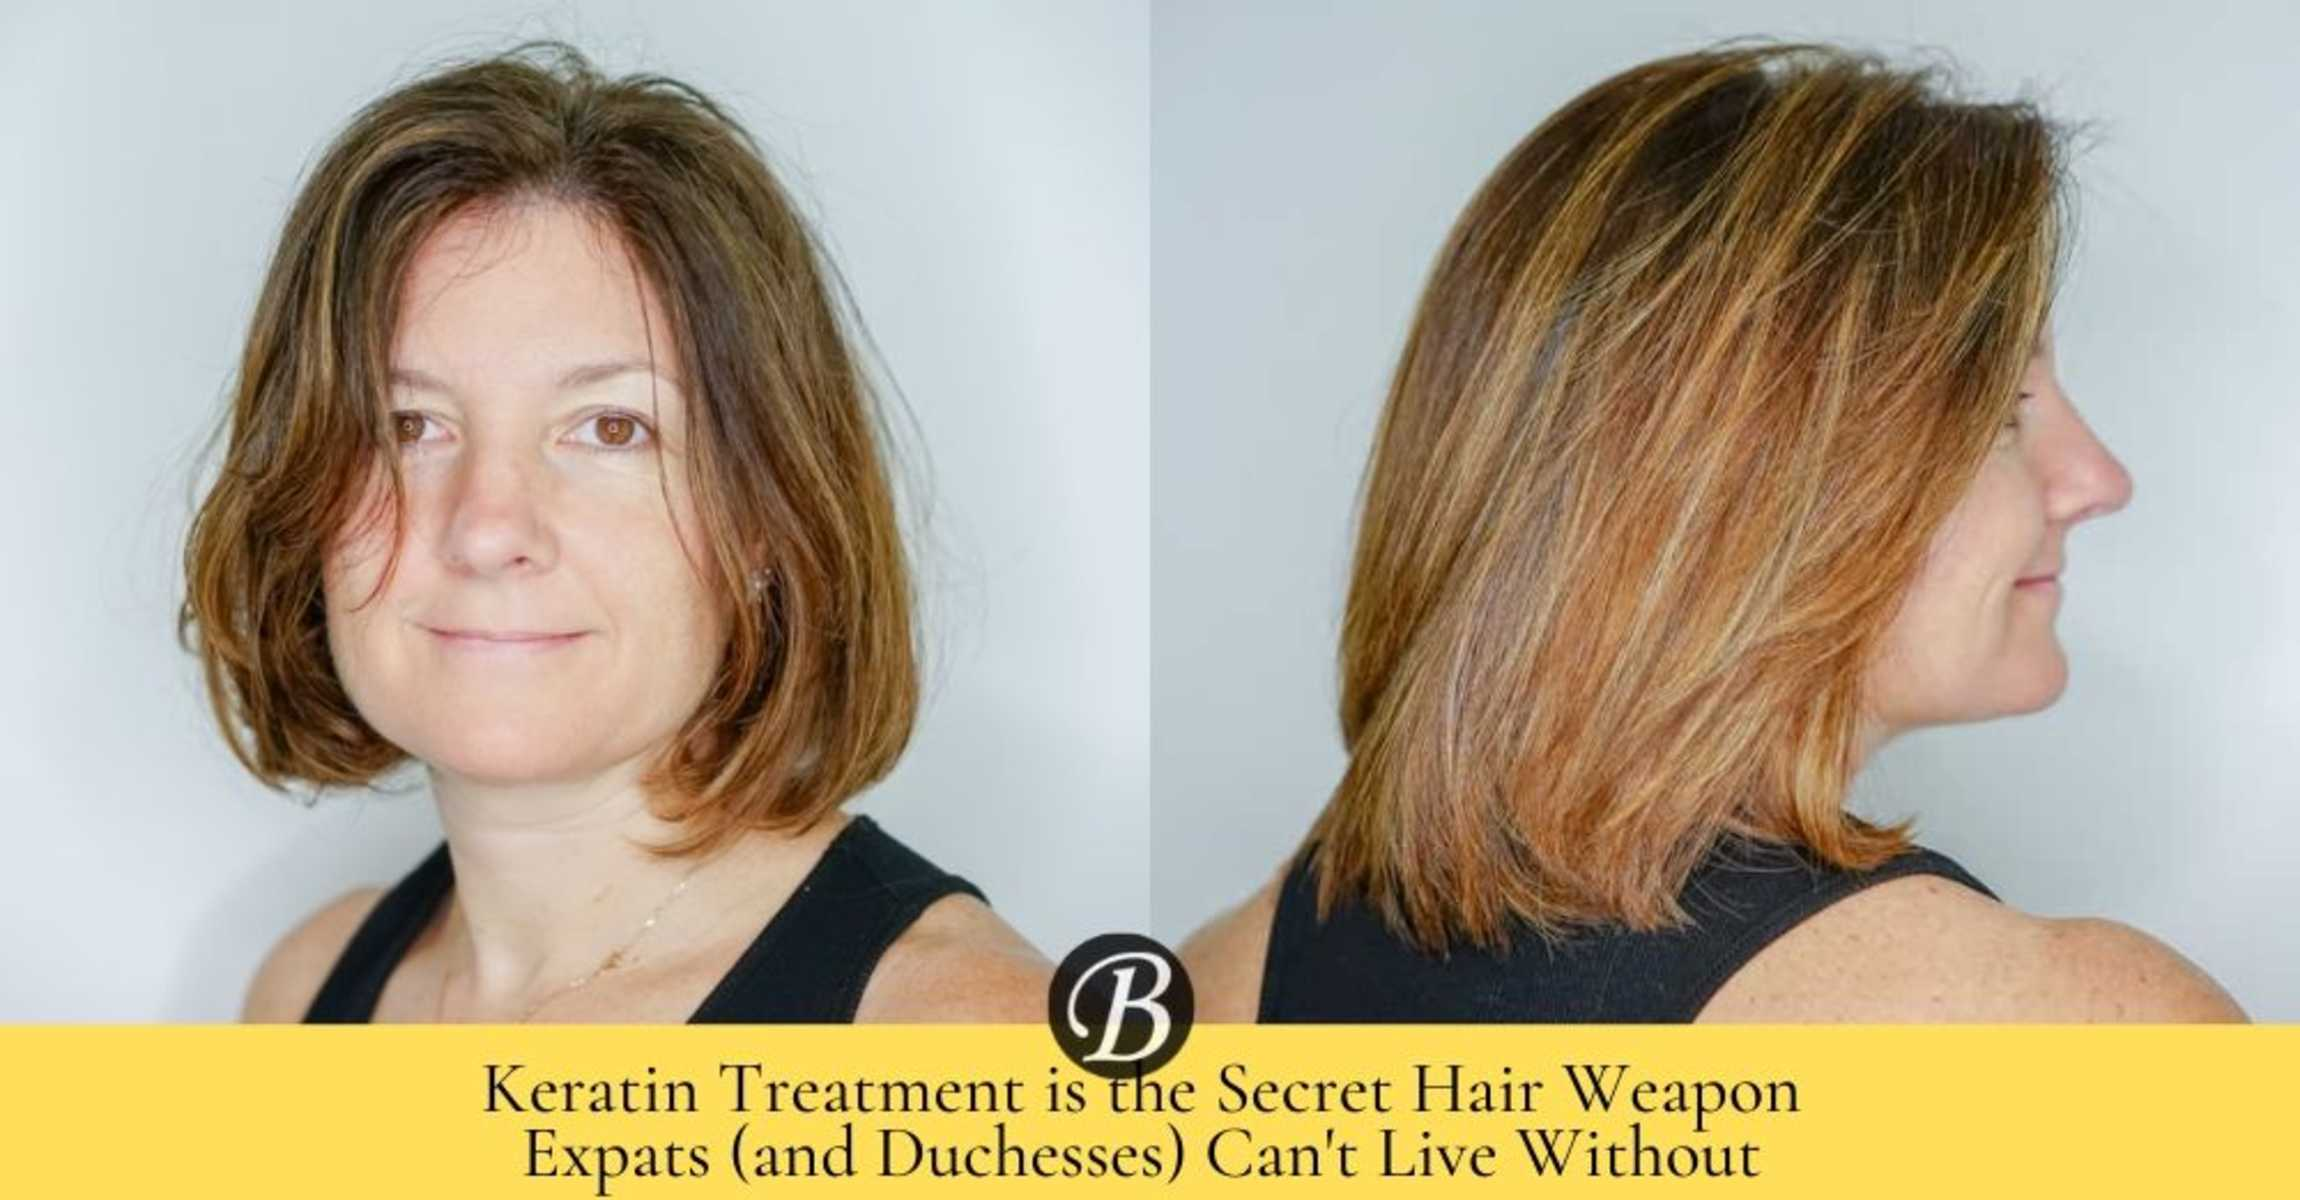 10 Reasons Why Keratin Treatment is the Secret Weapon Expats CANNOT Live Without in Singapore